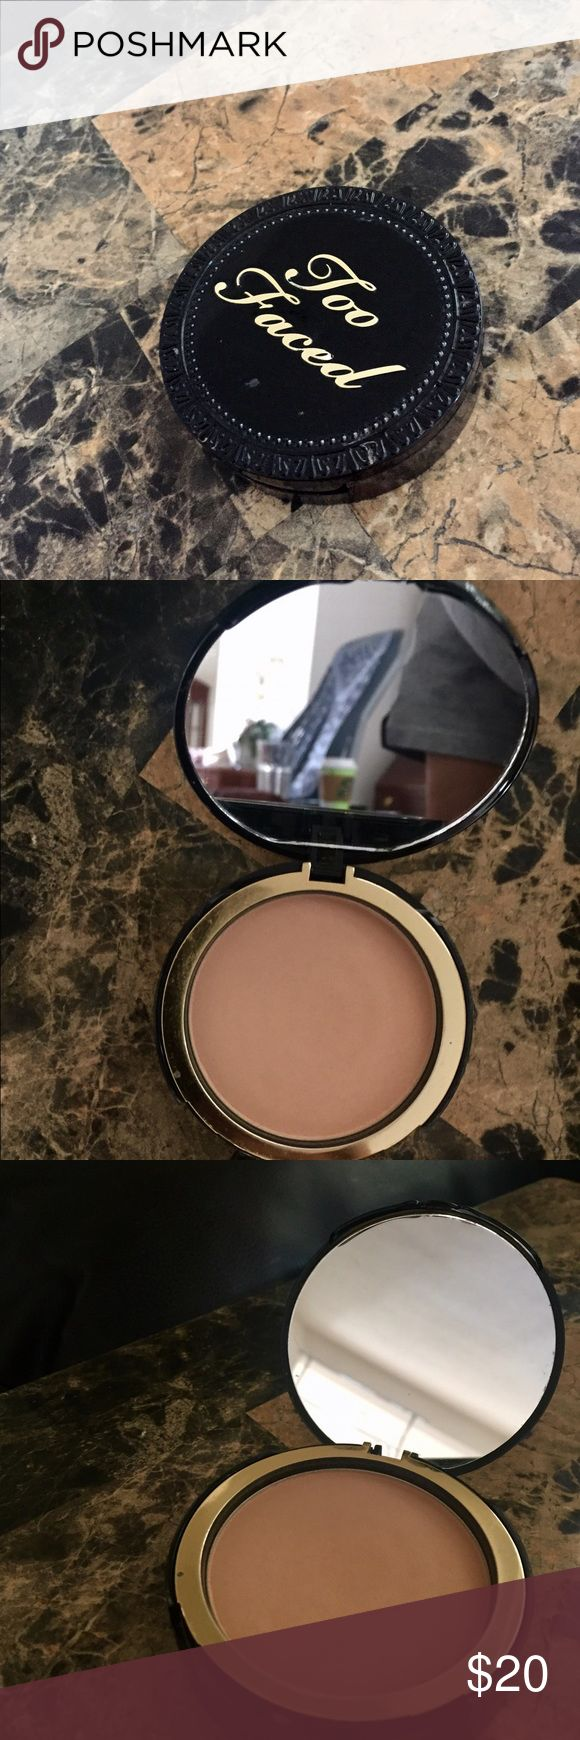 Too Faced Cocoa Powder Foundation The color is medium tan, once used one time. Brand new condition! Too Faced Makeup Foundation